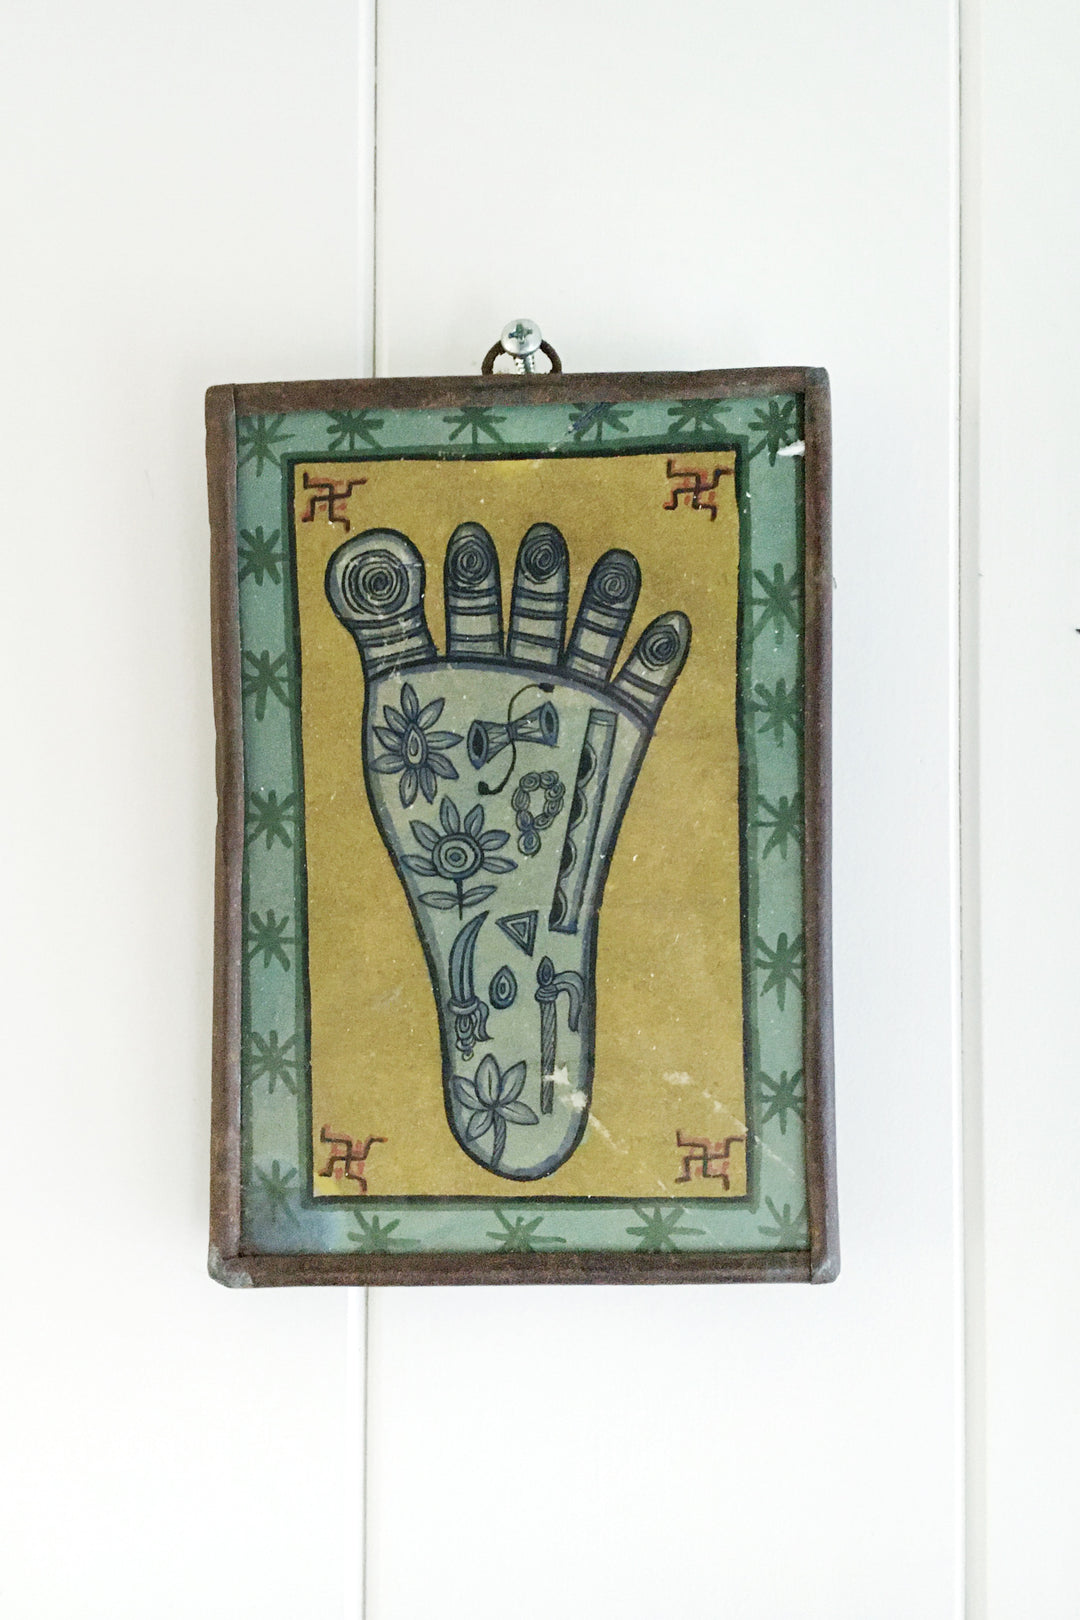 Vishnupada foot aqua framed miniature print